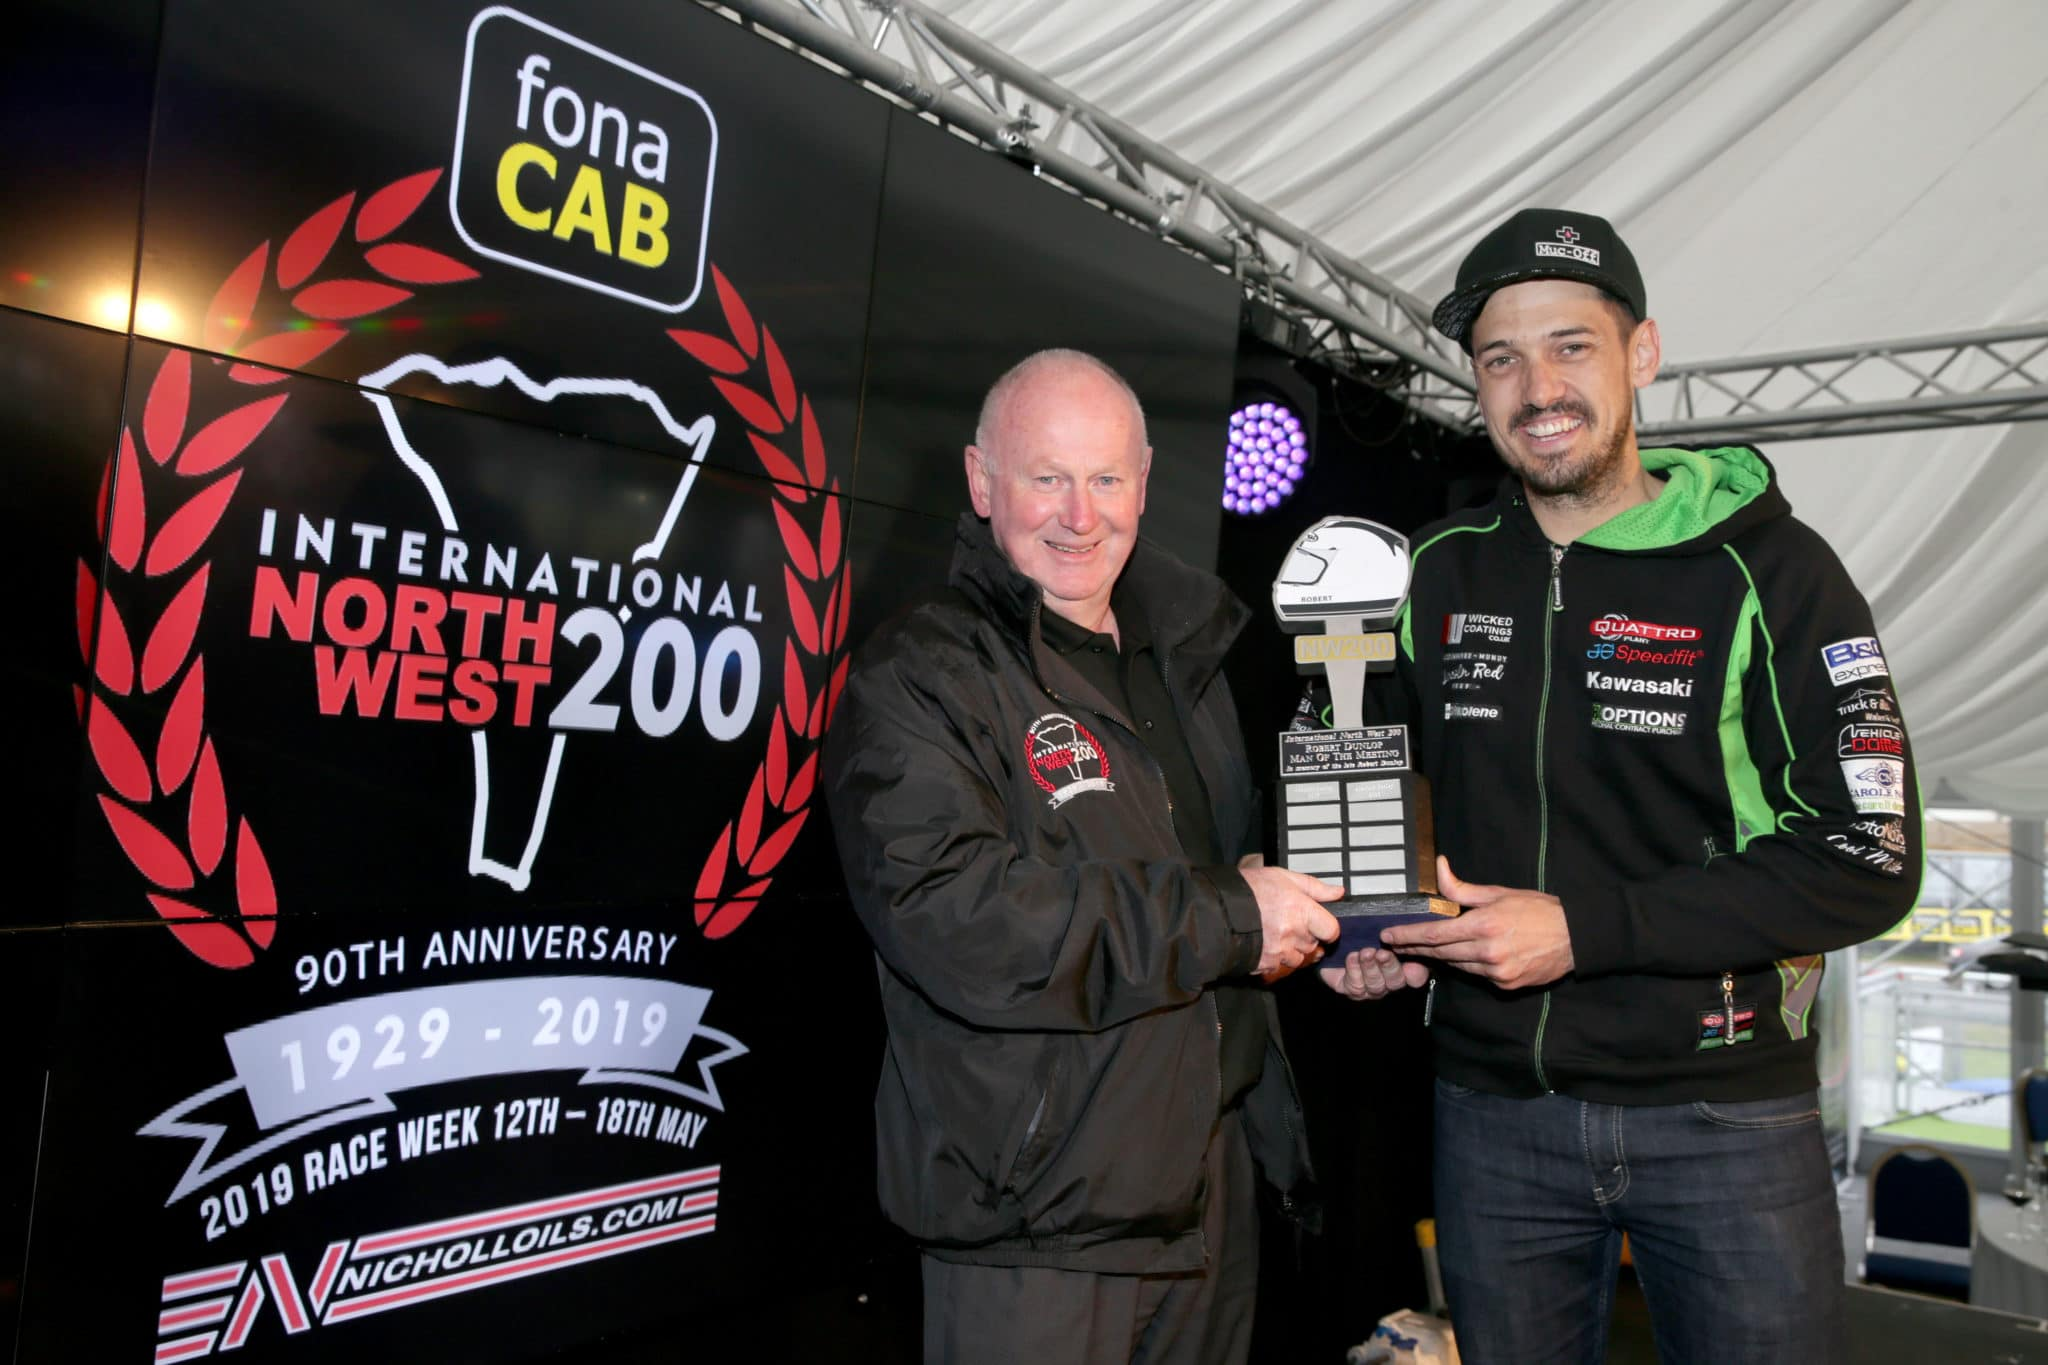 James Hillier takes Man of the Meeting at North West 200